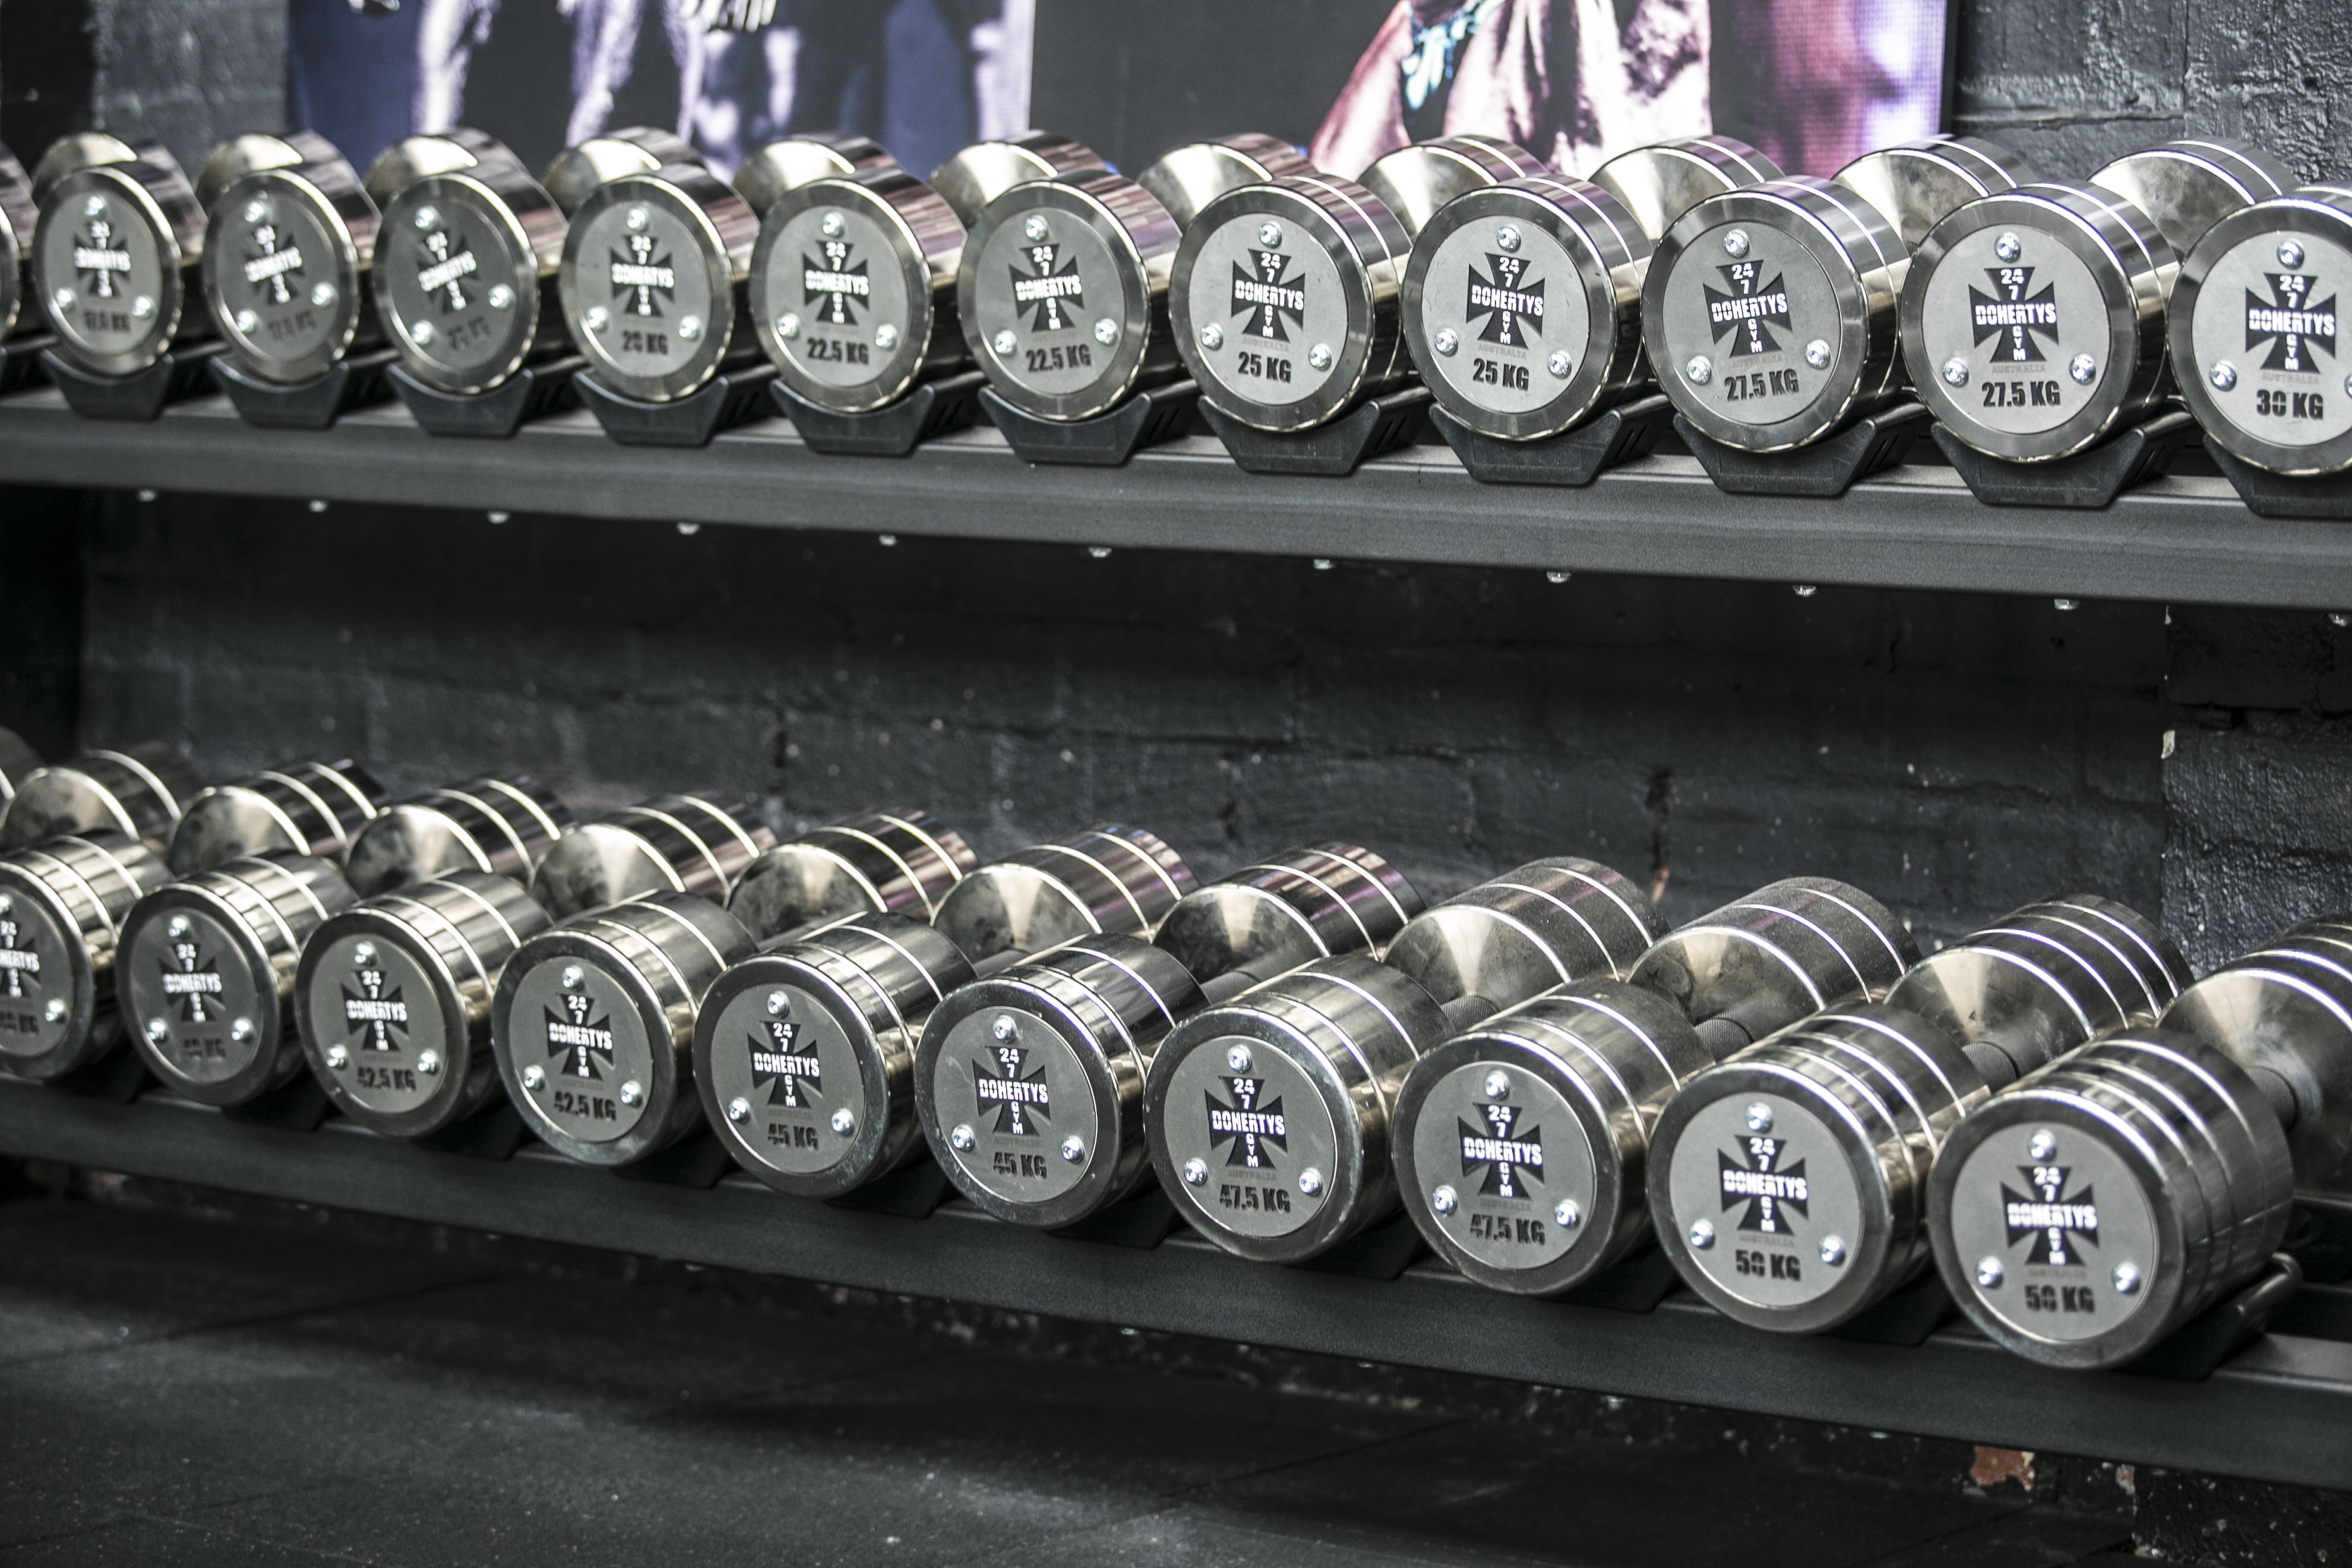 Trident Athletics - Watson Pro Dumbbells - Saving Space